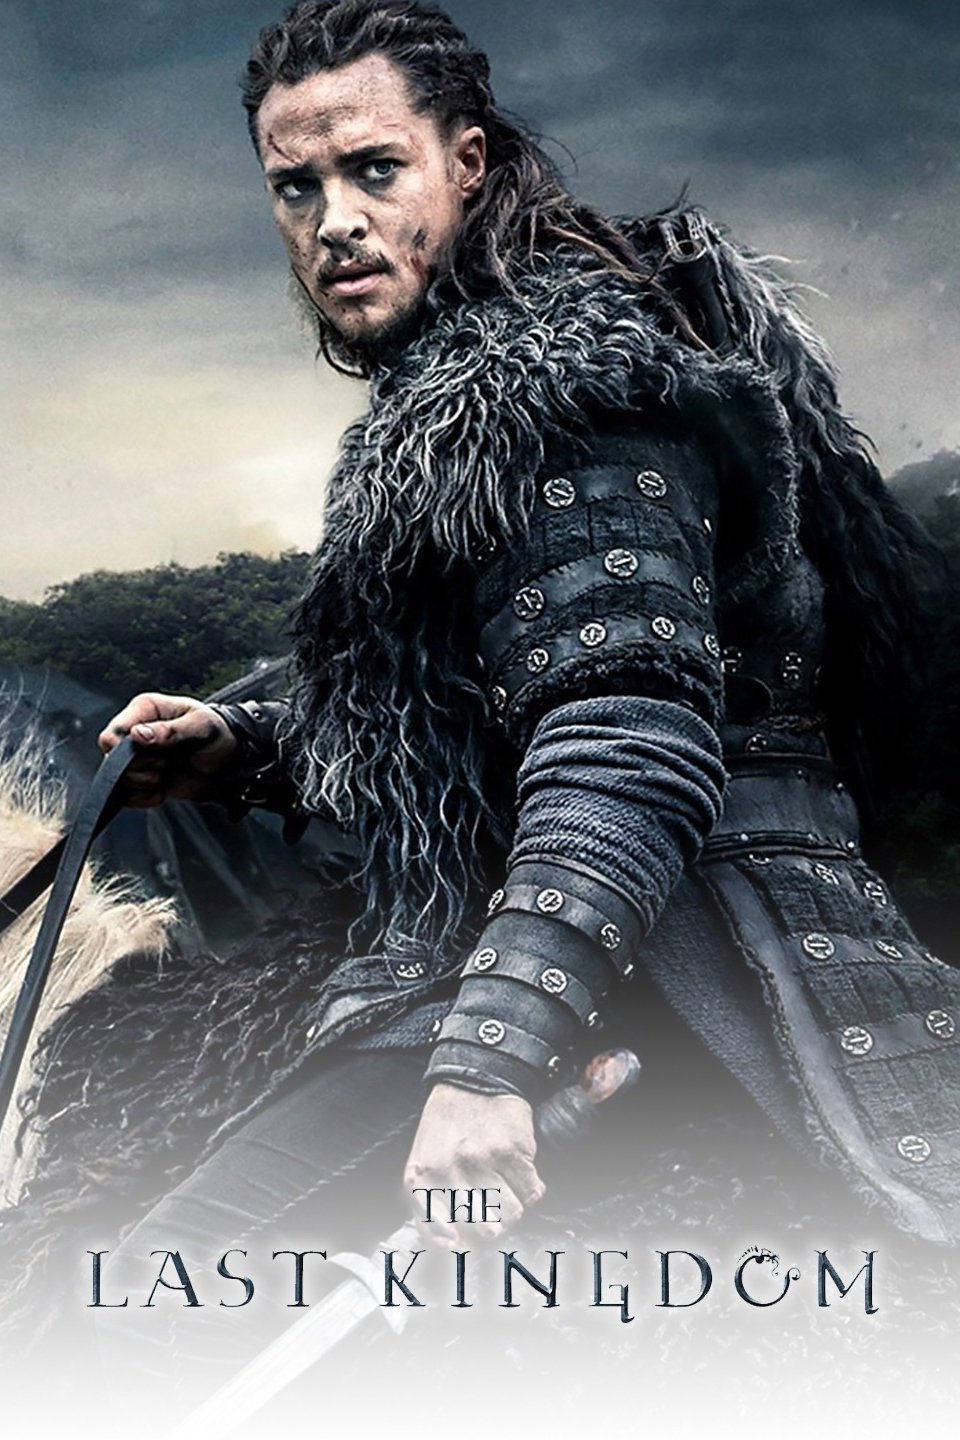 The Last Kingdom - The Last Kingdom follows the story of Uthred who witnessed his father killed in front of him at a young age.Years later, Uthred becomes a fearless warrior who deals with another tragic circumstance when his surrogate family is killed in a fire set by a family exacting revenge. Uthred swears to revenge the death of his family and reclaim his land.